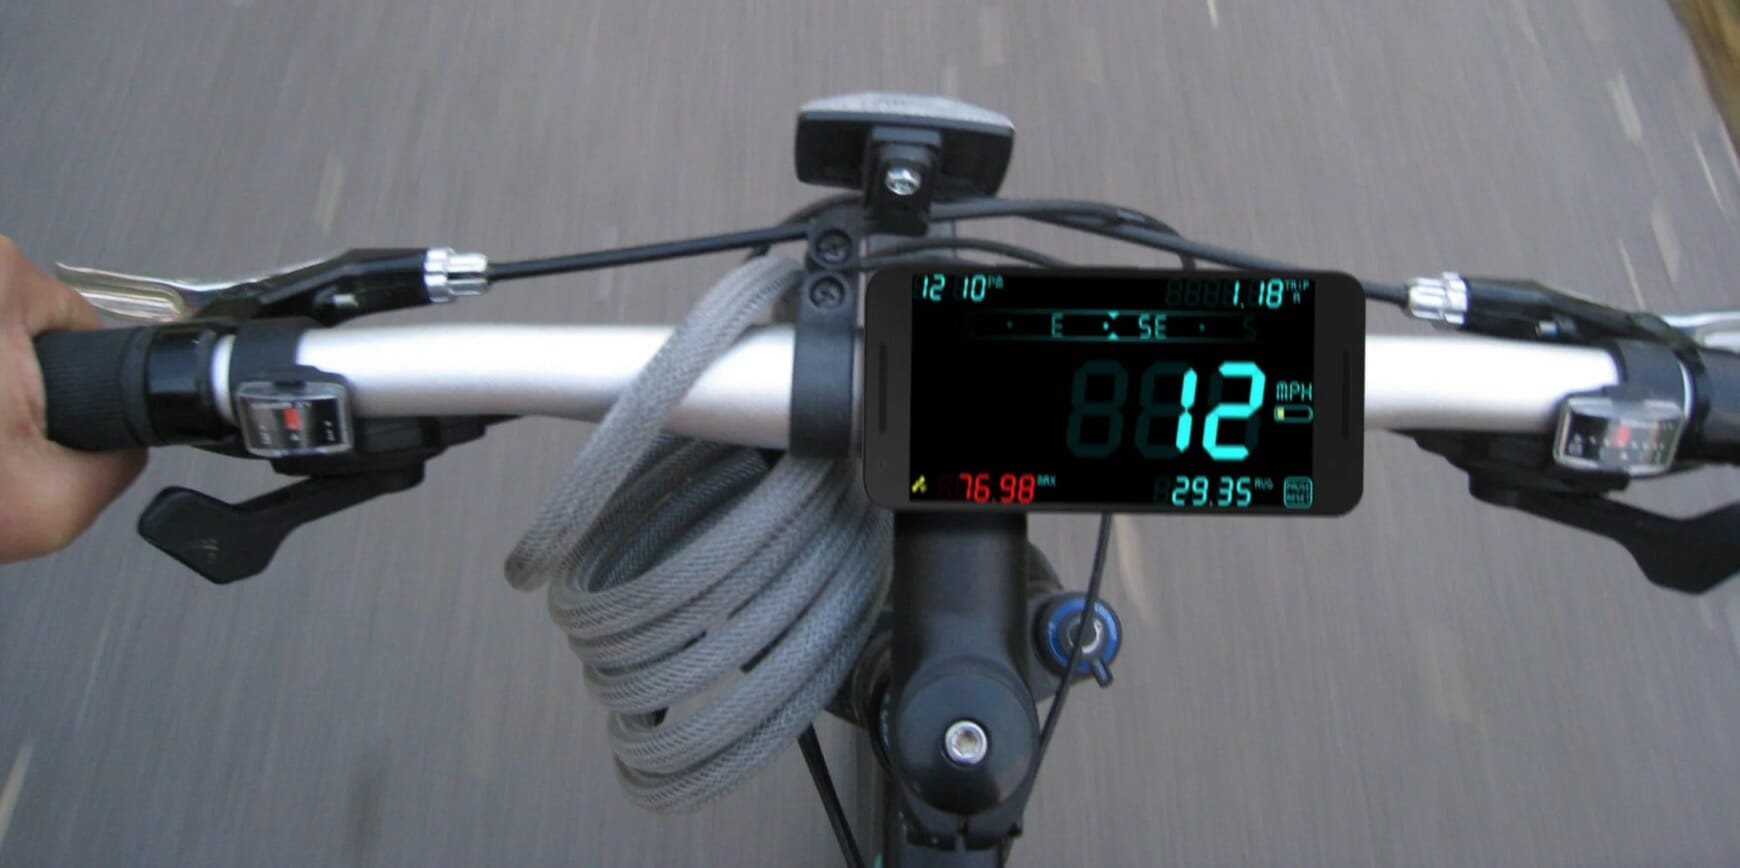 The 11 best smartphone cycling apps for Android